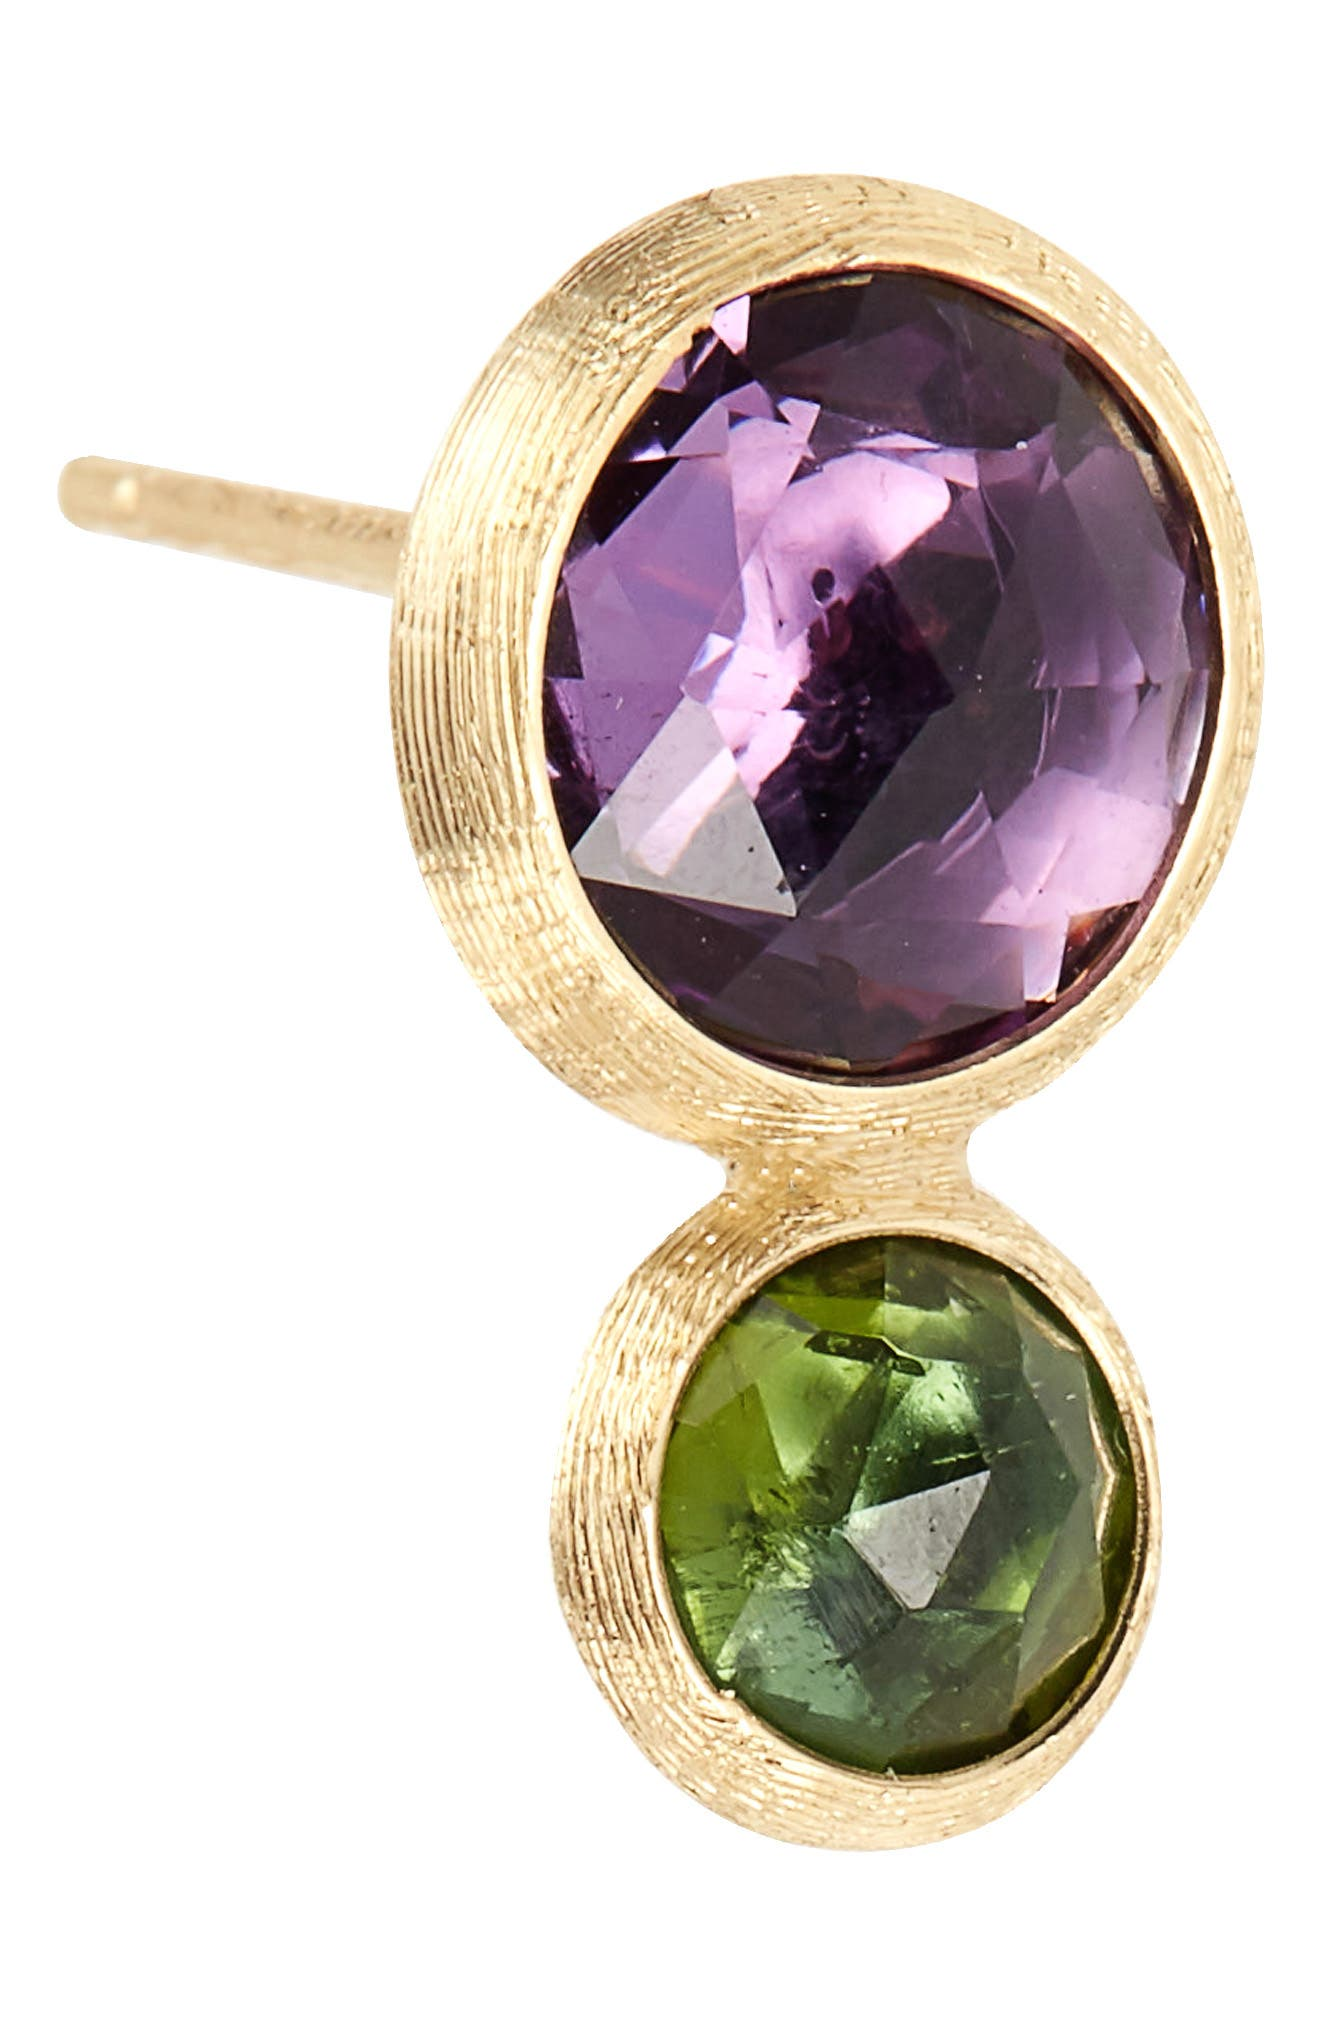 Jaipur Amethyst & Tourmaline Stud Earrings,                             Alternate thumbnail 5, color,                             Yello Gold/ Amethyst